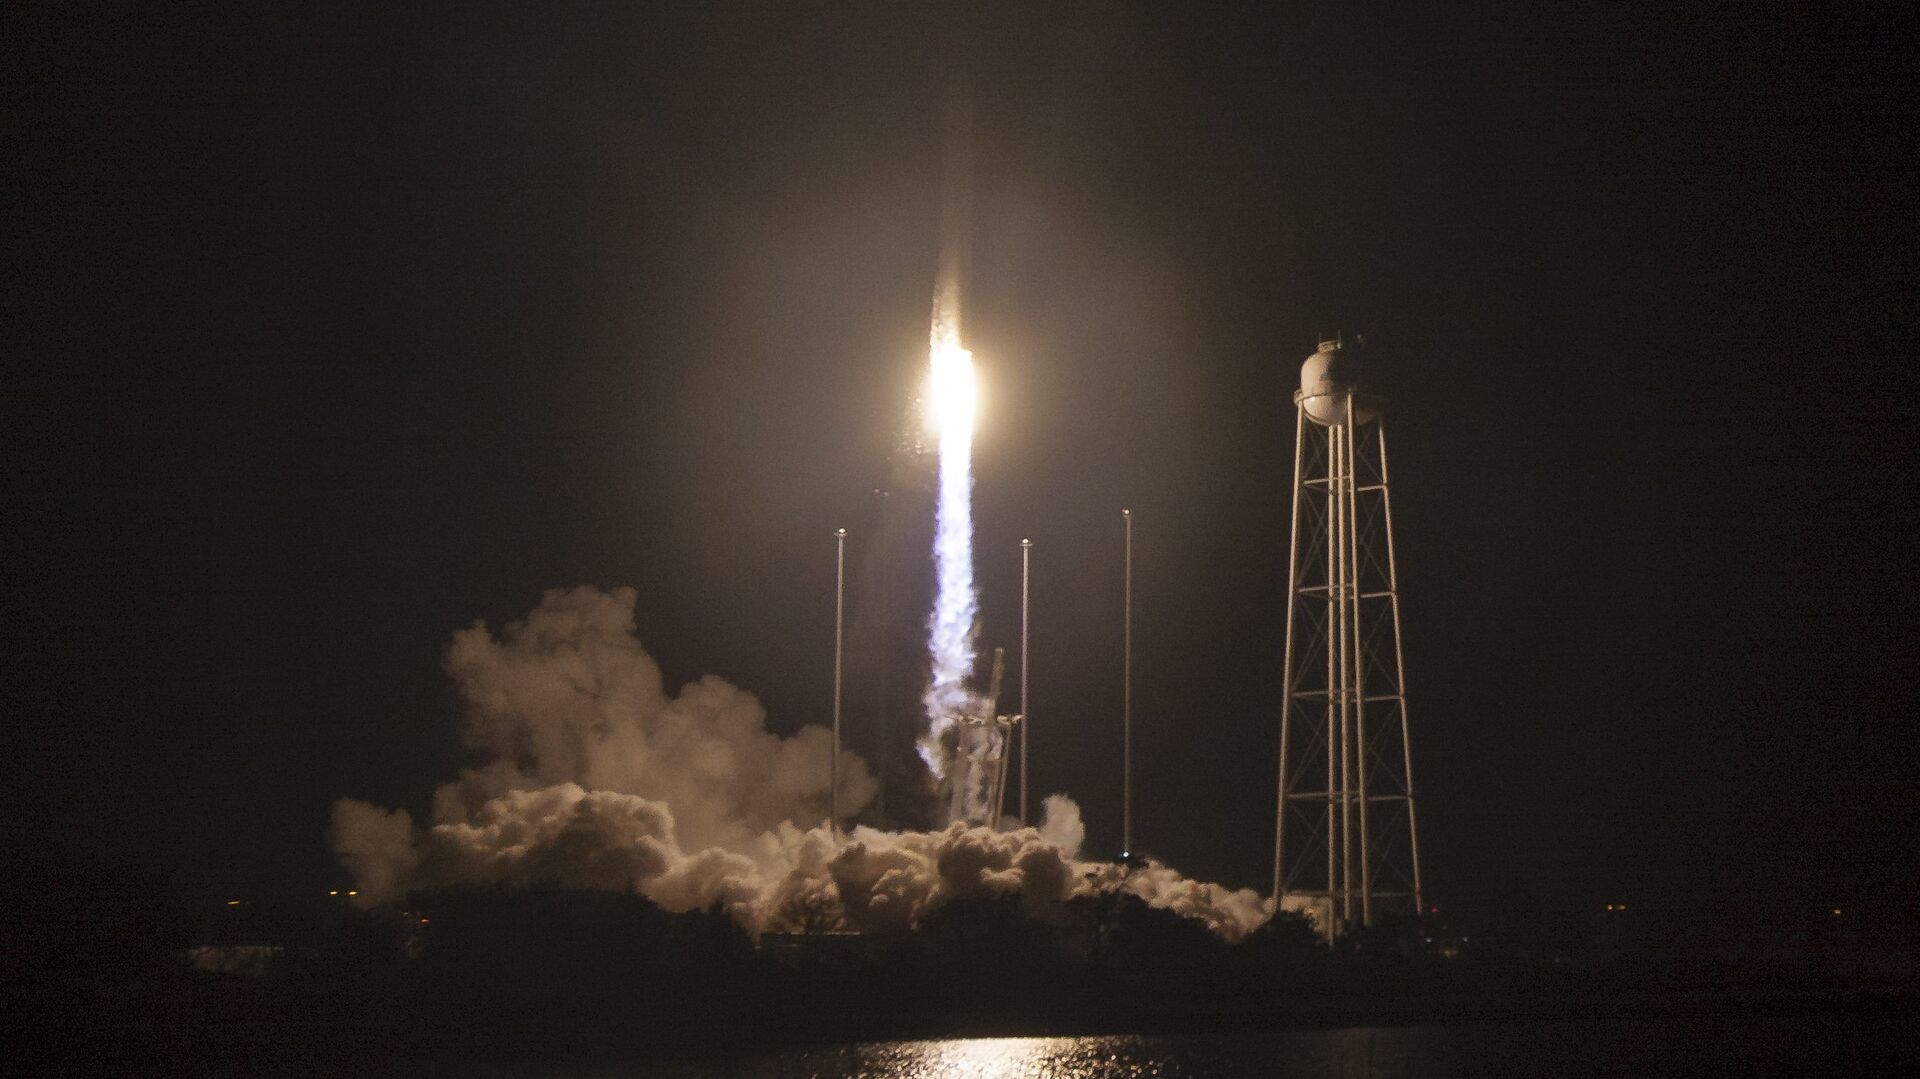 The Orbital ATK Antares rocket launches to deliver a cargo ship for the International Space Station at NASA's Wallops Flight Facility in Virginia - Sputnik Mundo, 1920, 11.08.2021